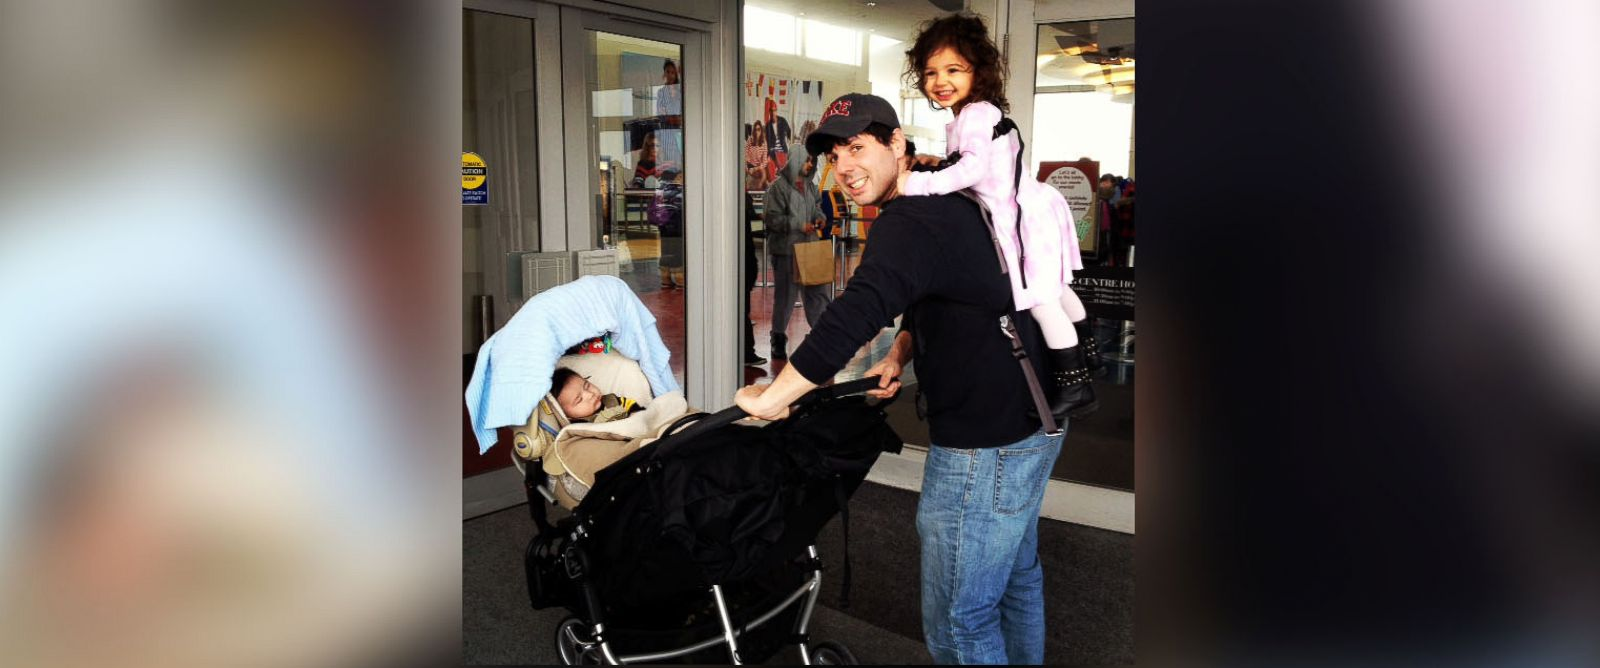 PHOTO: Dad blogger Adam Dolgin asked for $50k on a crowd-funding site to stay at home with his kids